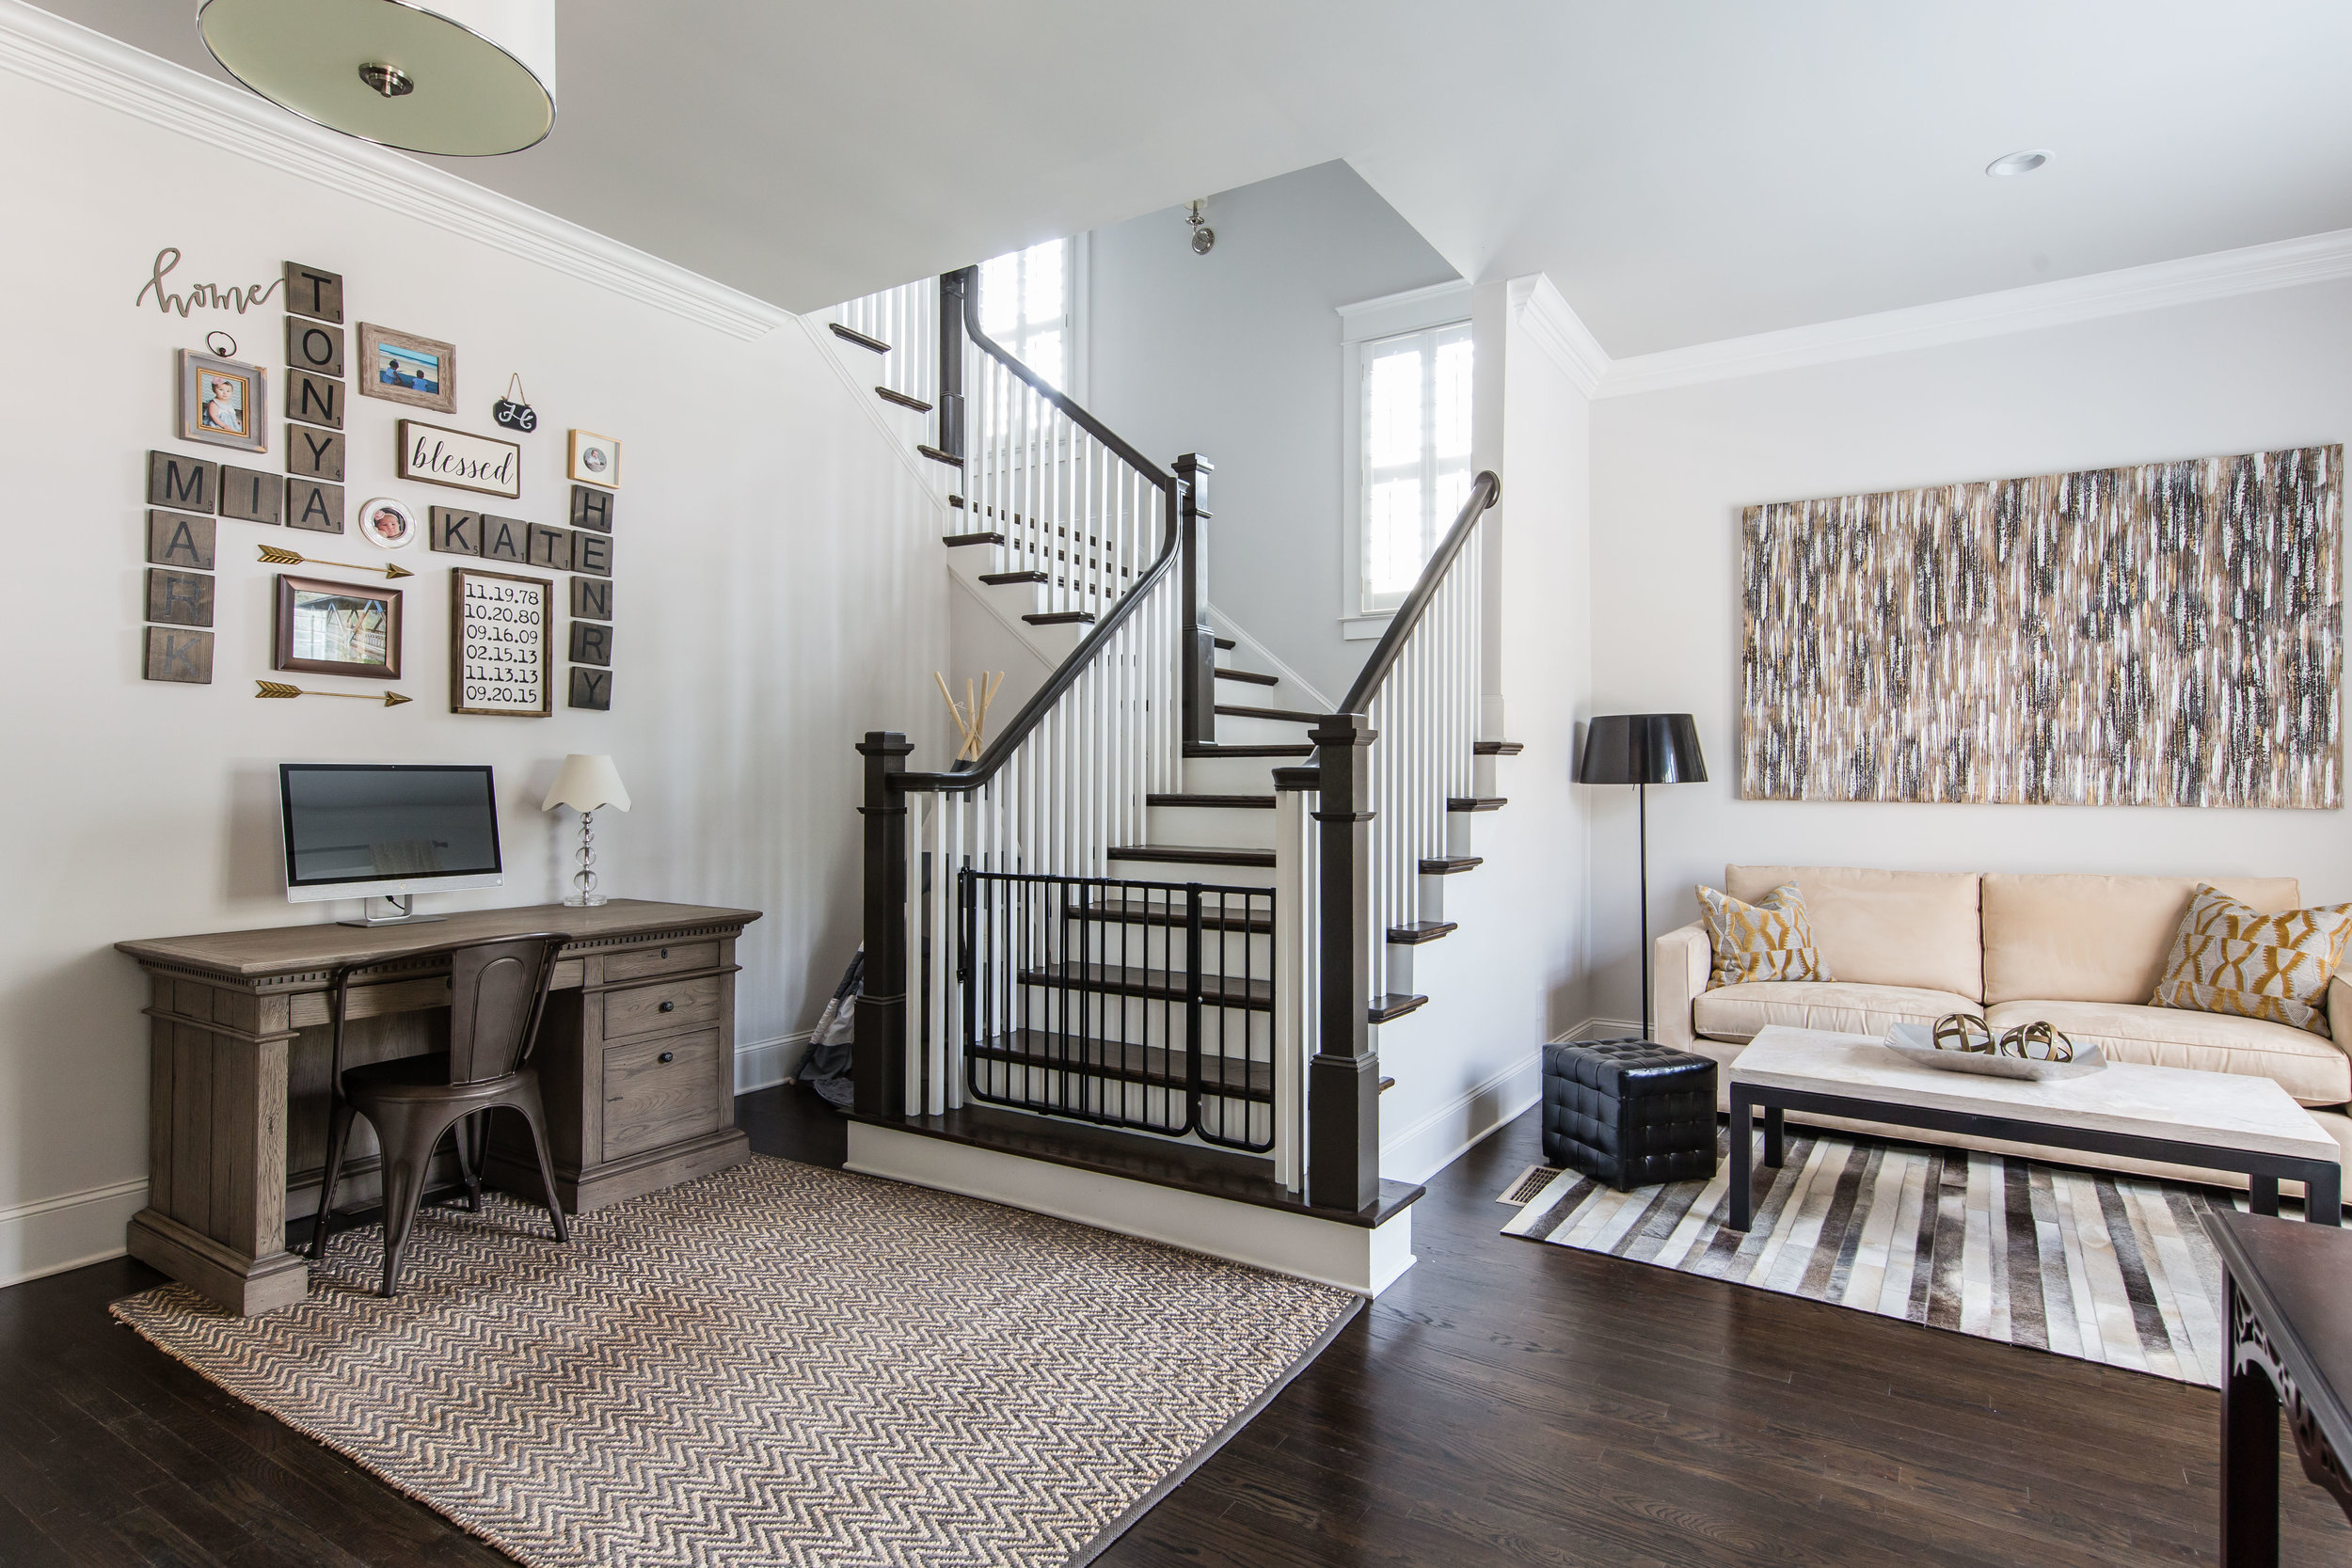 900 S Candler-Staircase 1.jpg